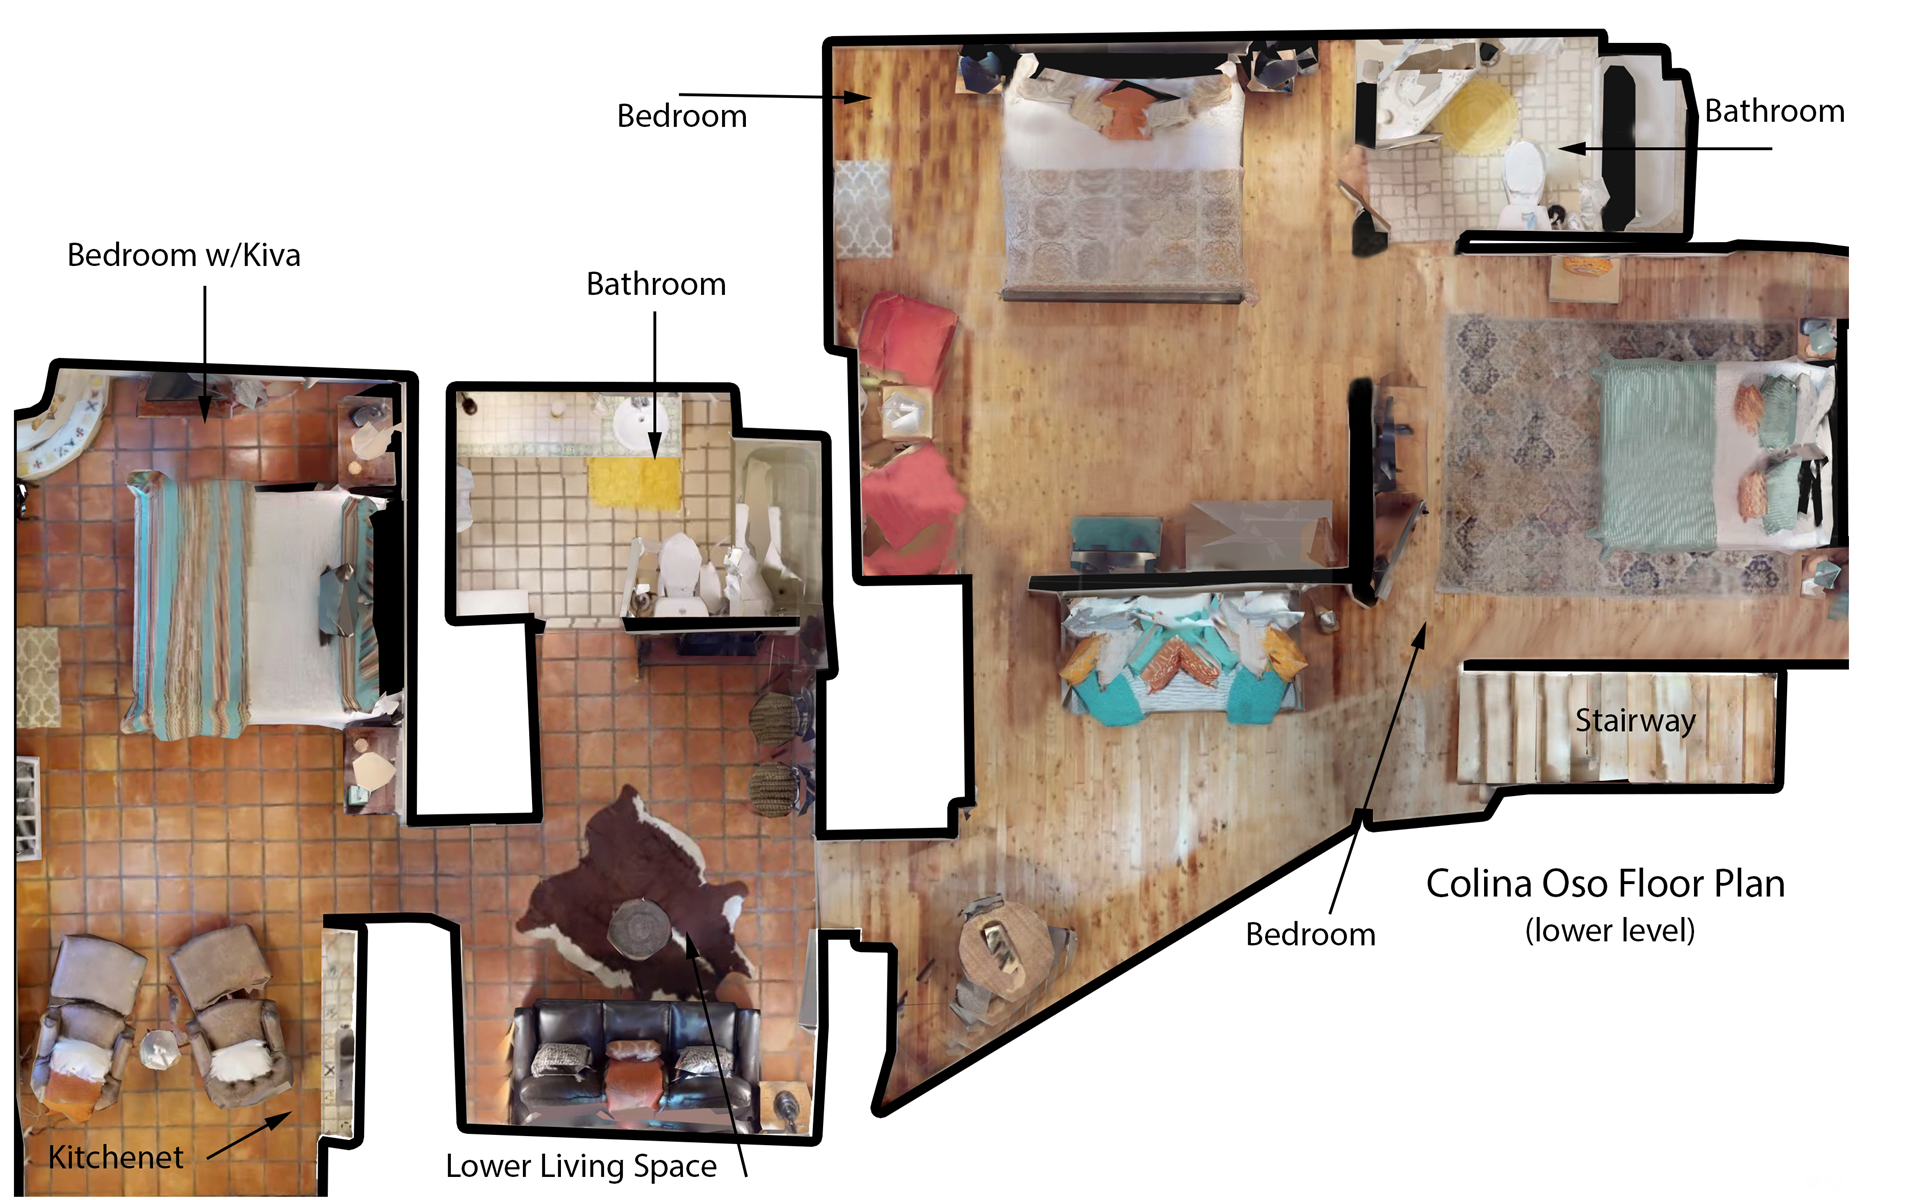 Floor Plan for Colina Oso